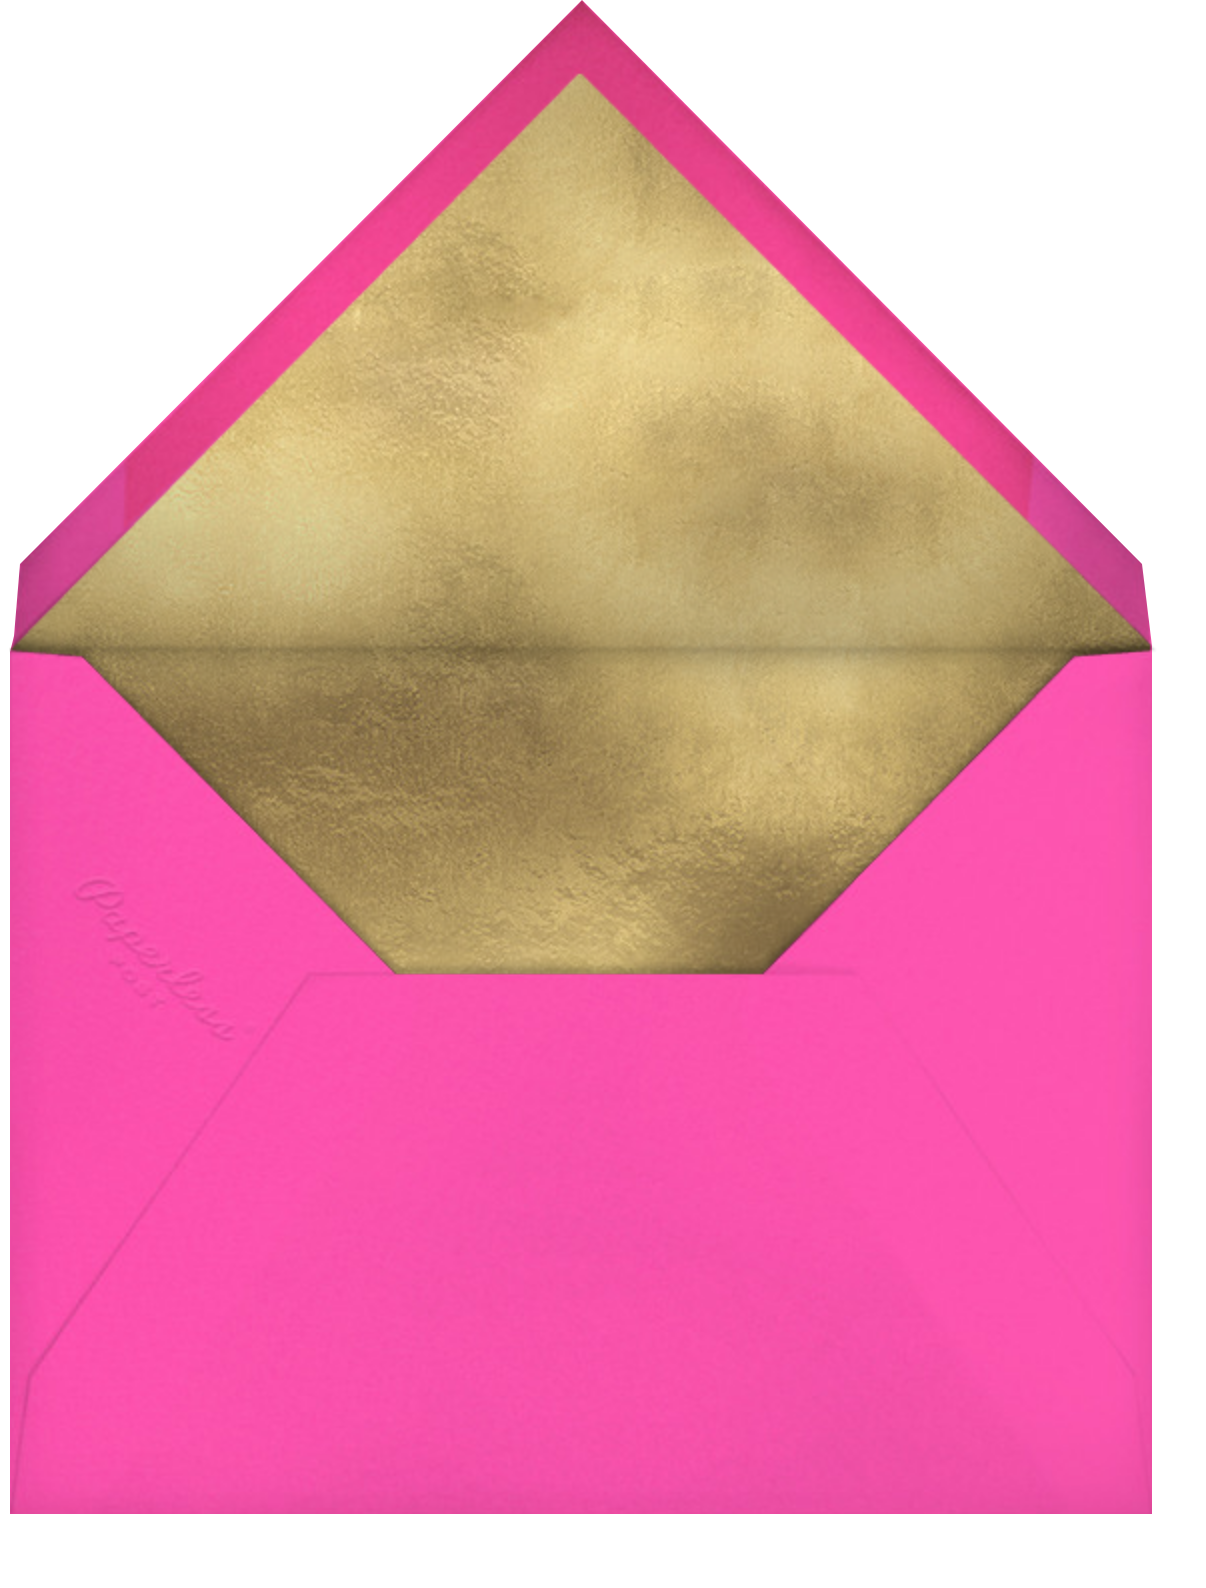 Dvaar (Invitation) - Schiaparelli - Paperless Post - All - envelope back